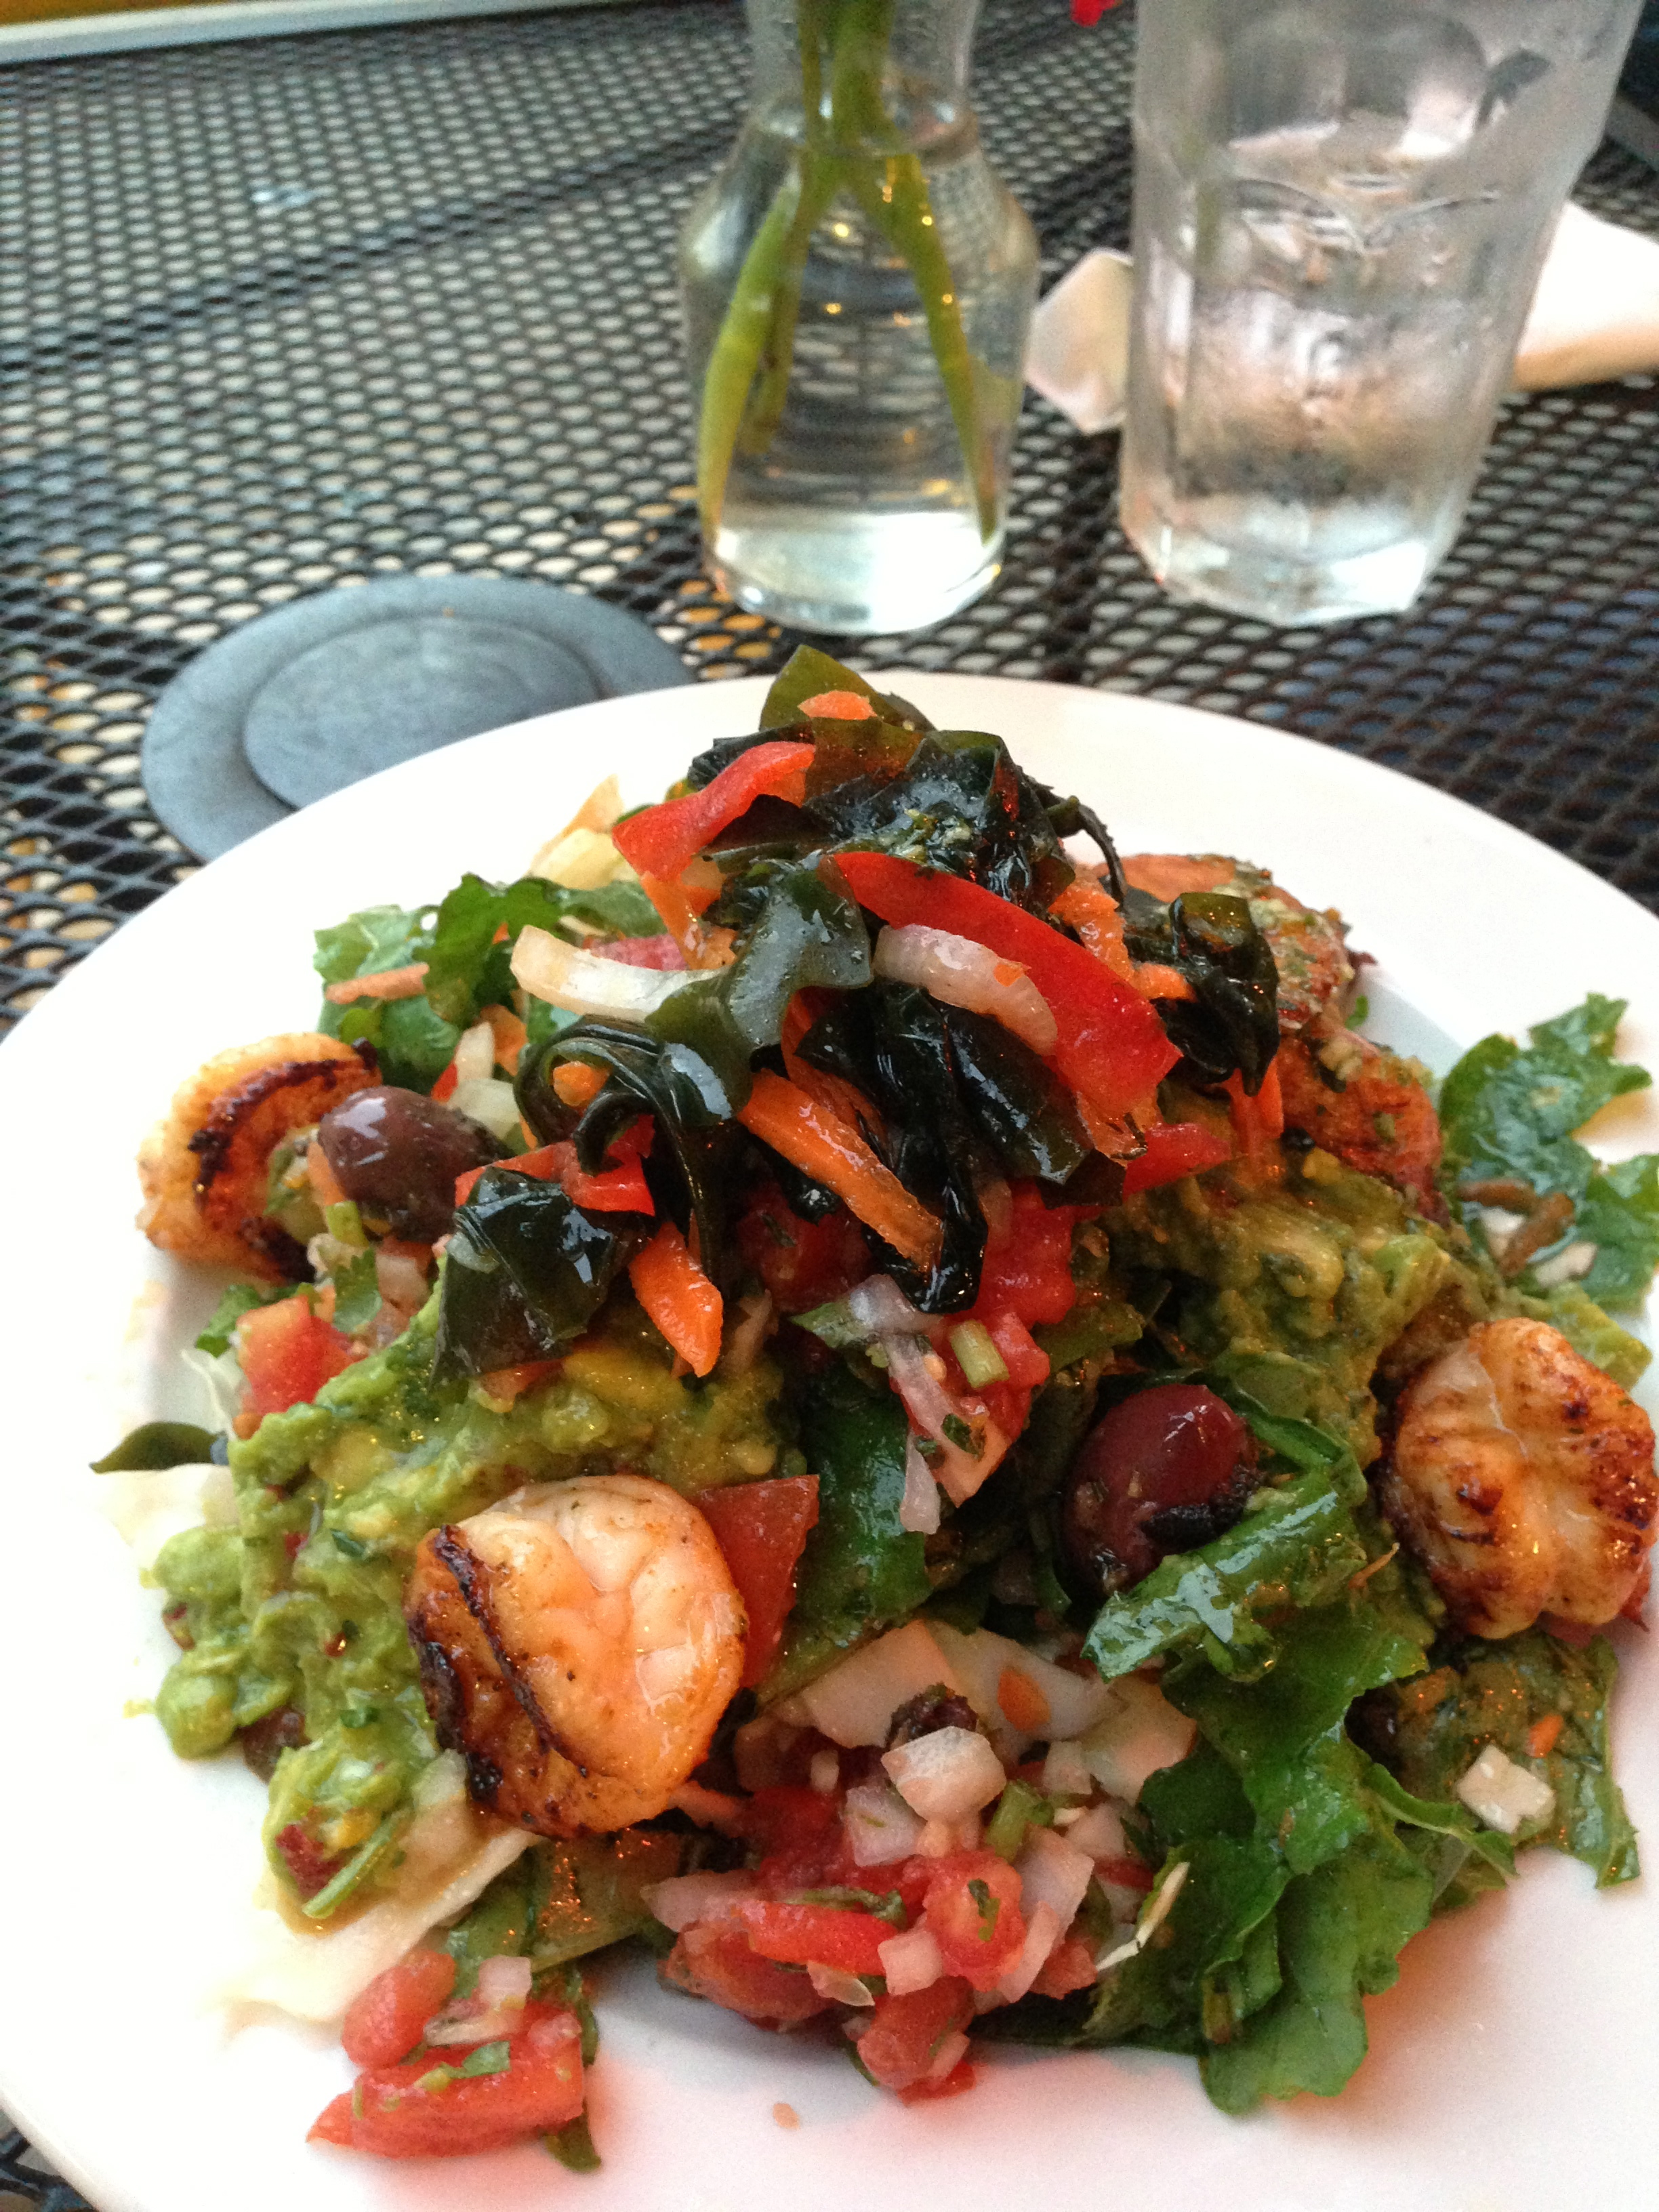 Great Restaurants I Ate at In Asheville by Angela Roberts